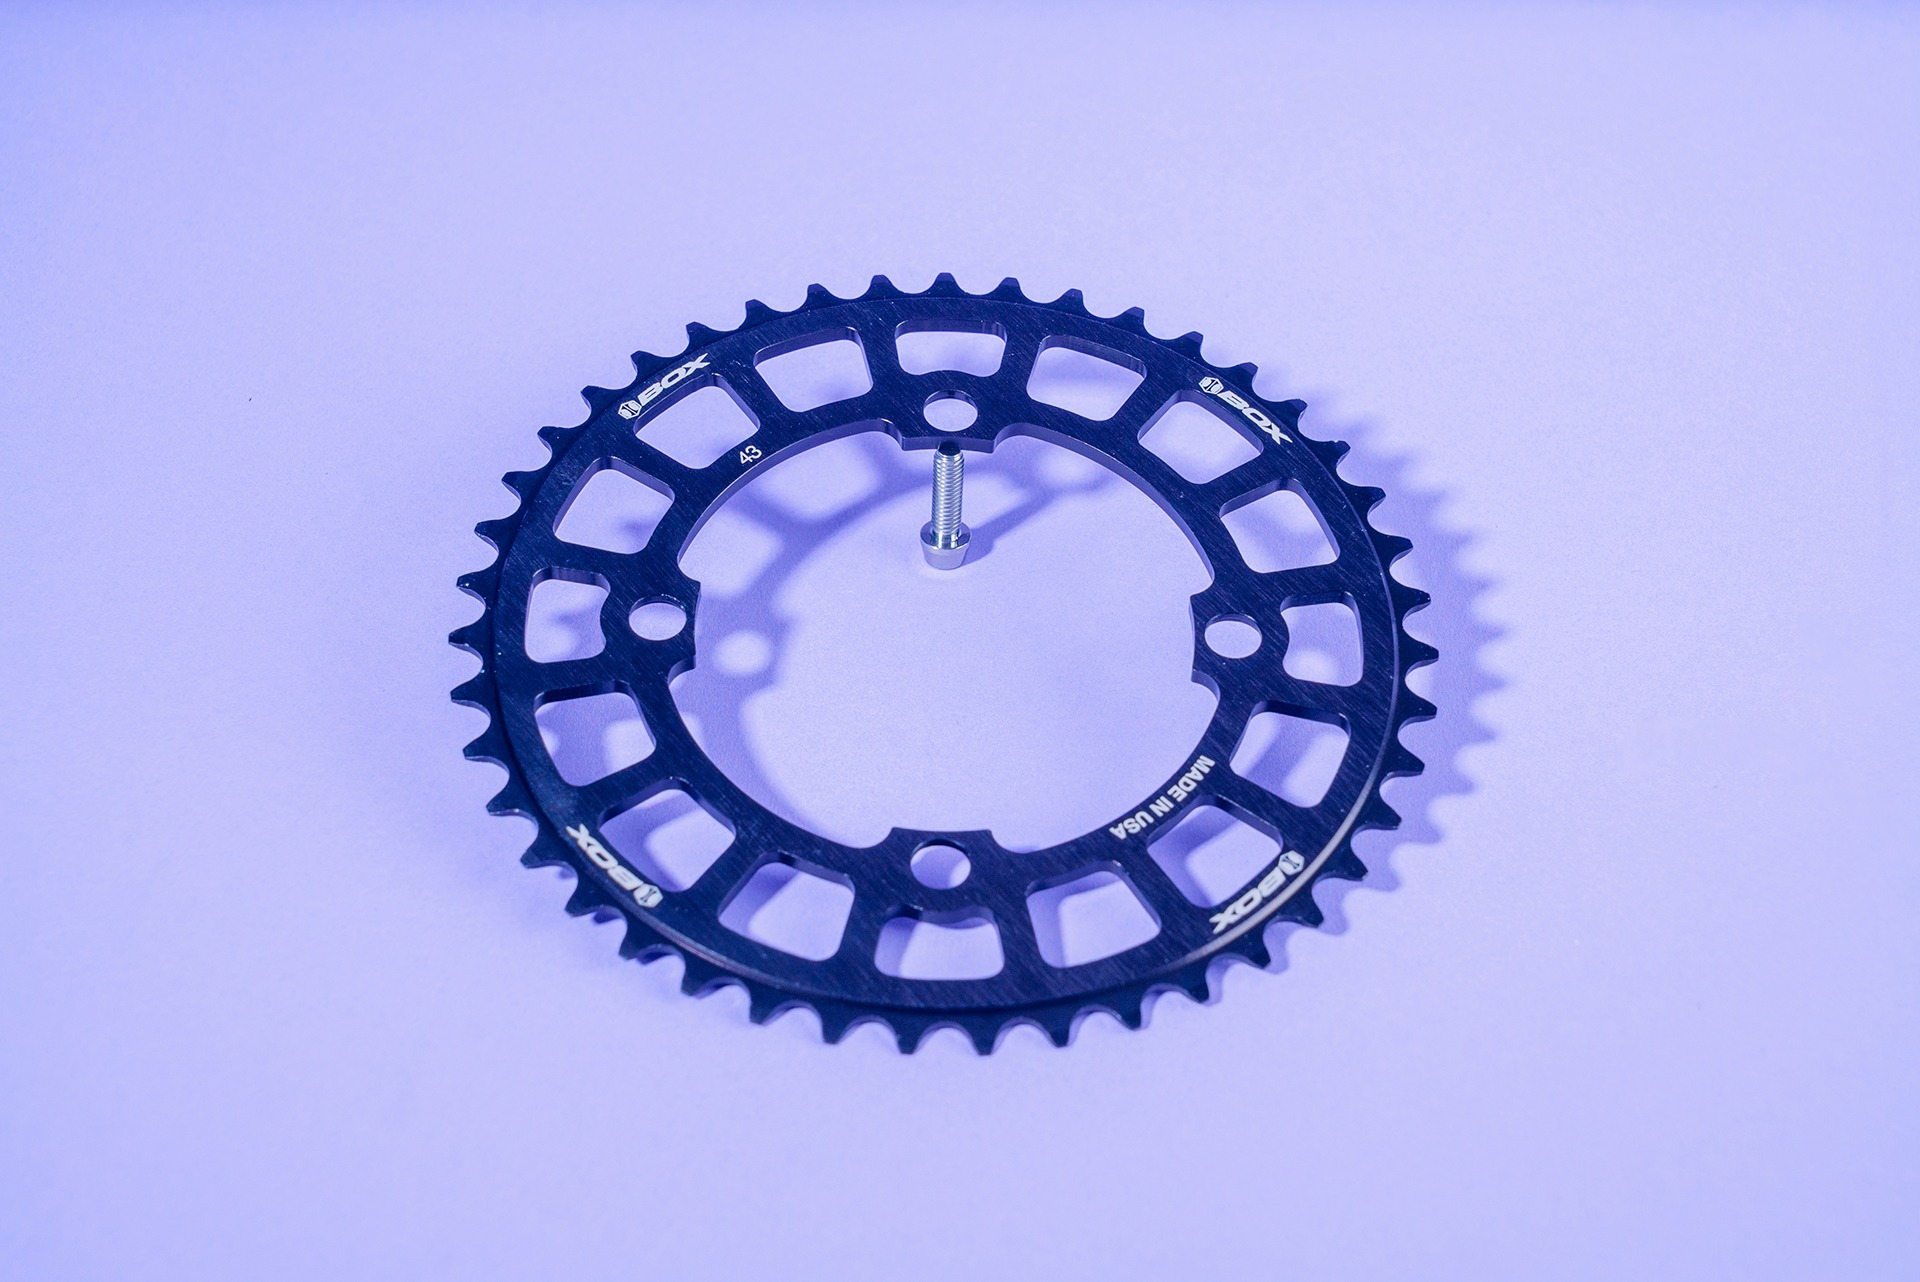 BOX - COSINE 7075 4-BOLT CHAINRING - REVIEW